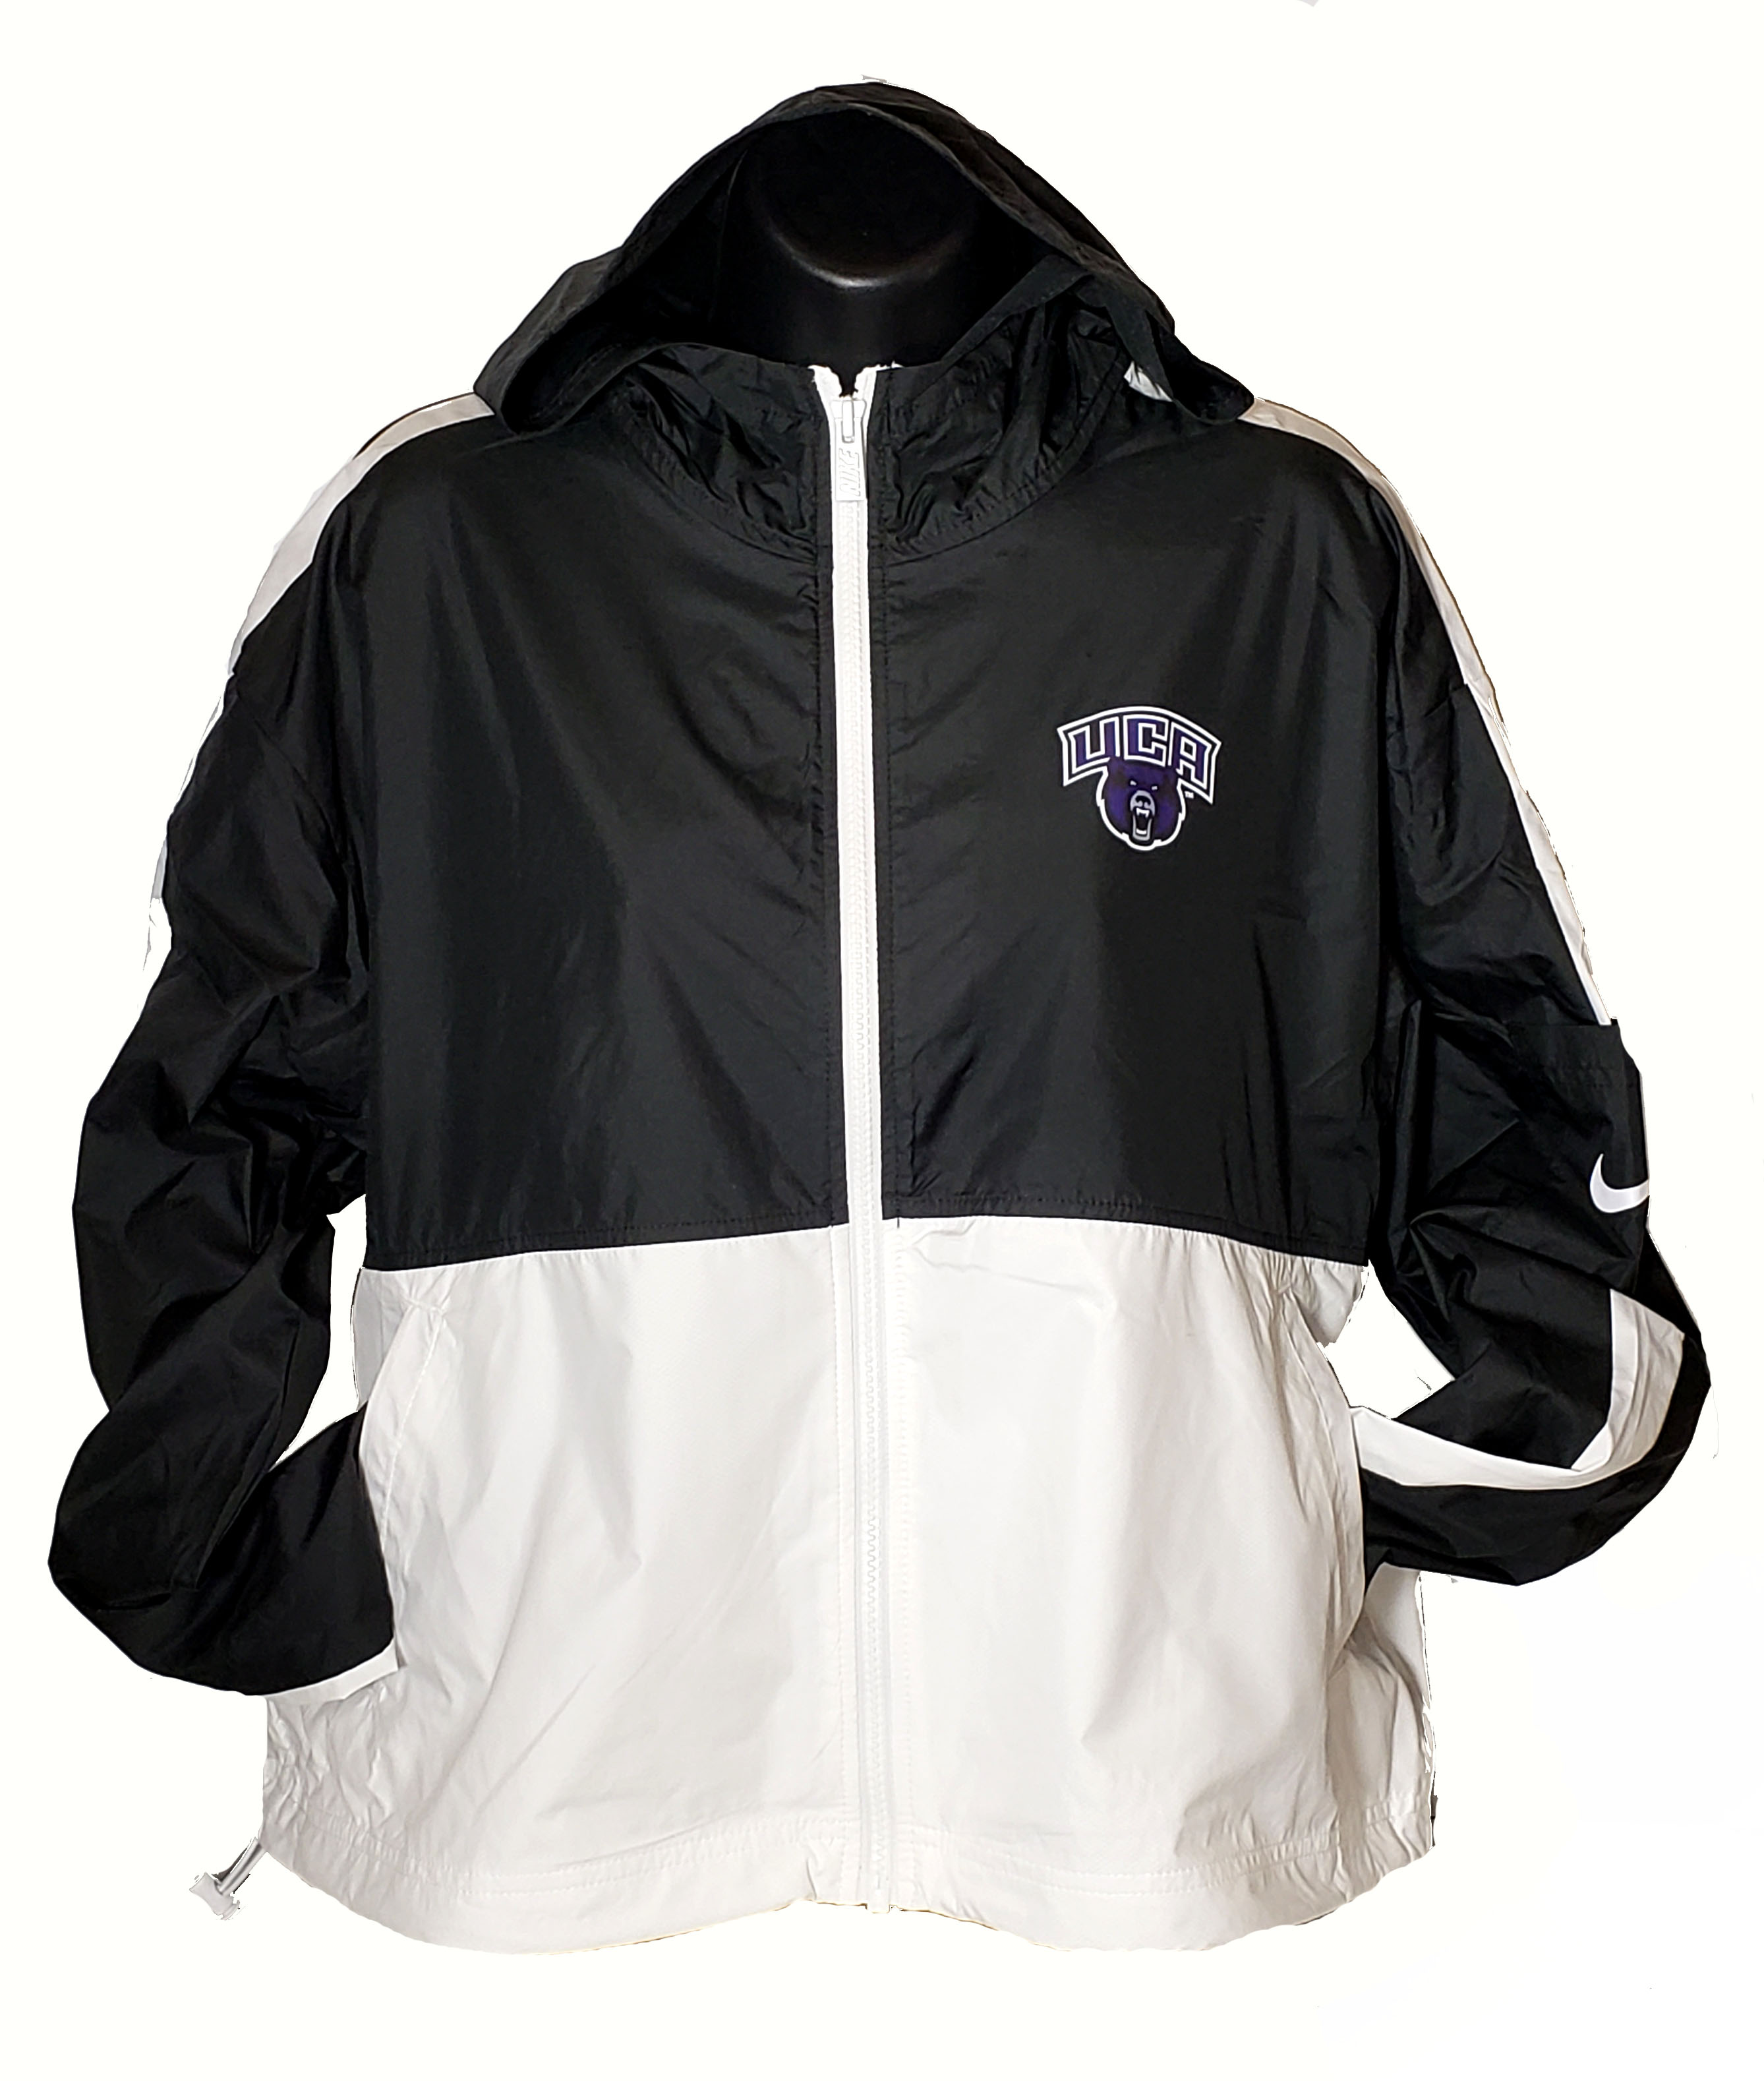 Womens Core Windbreaker